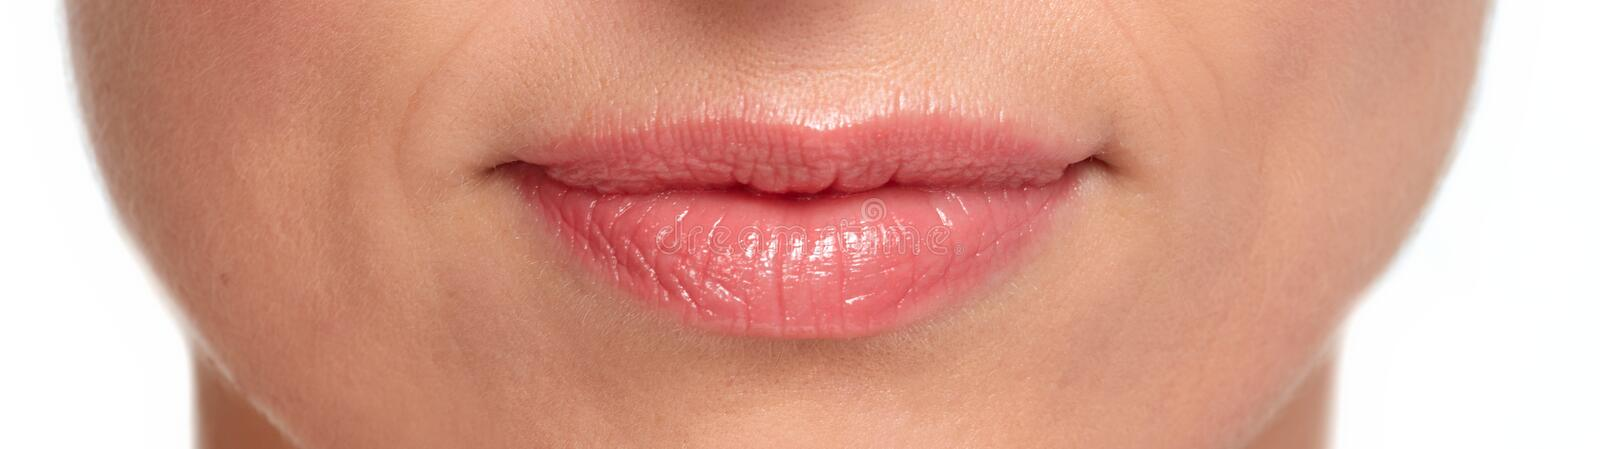 Woman lips royalty free stock images